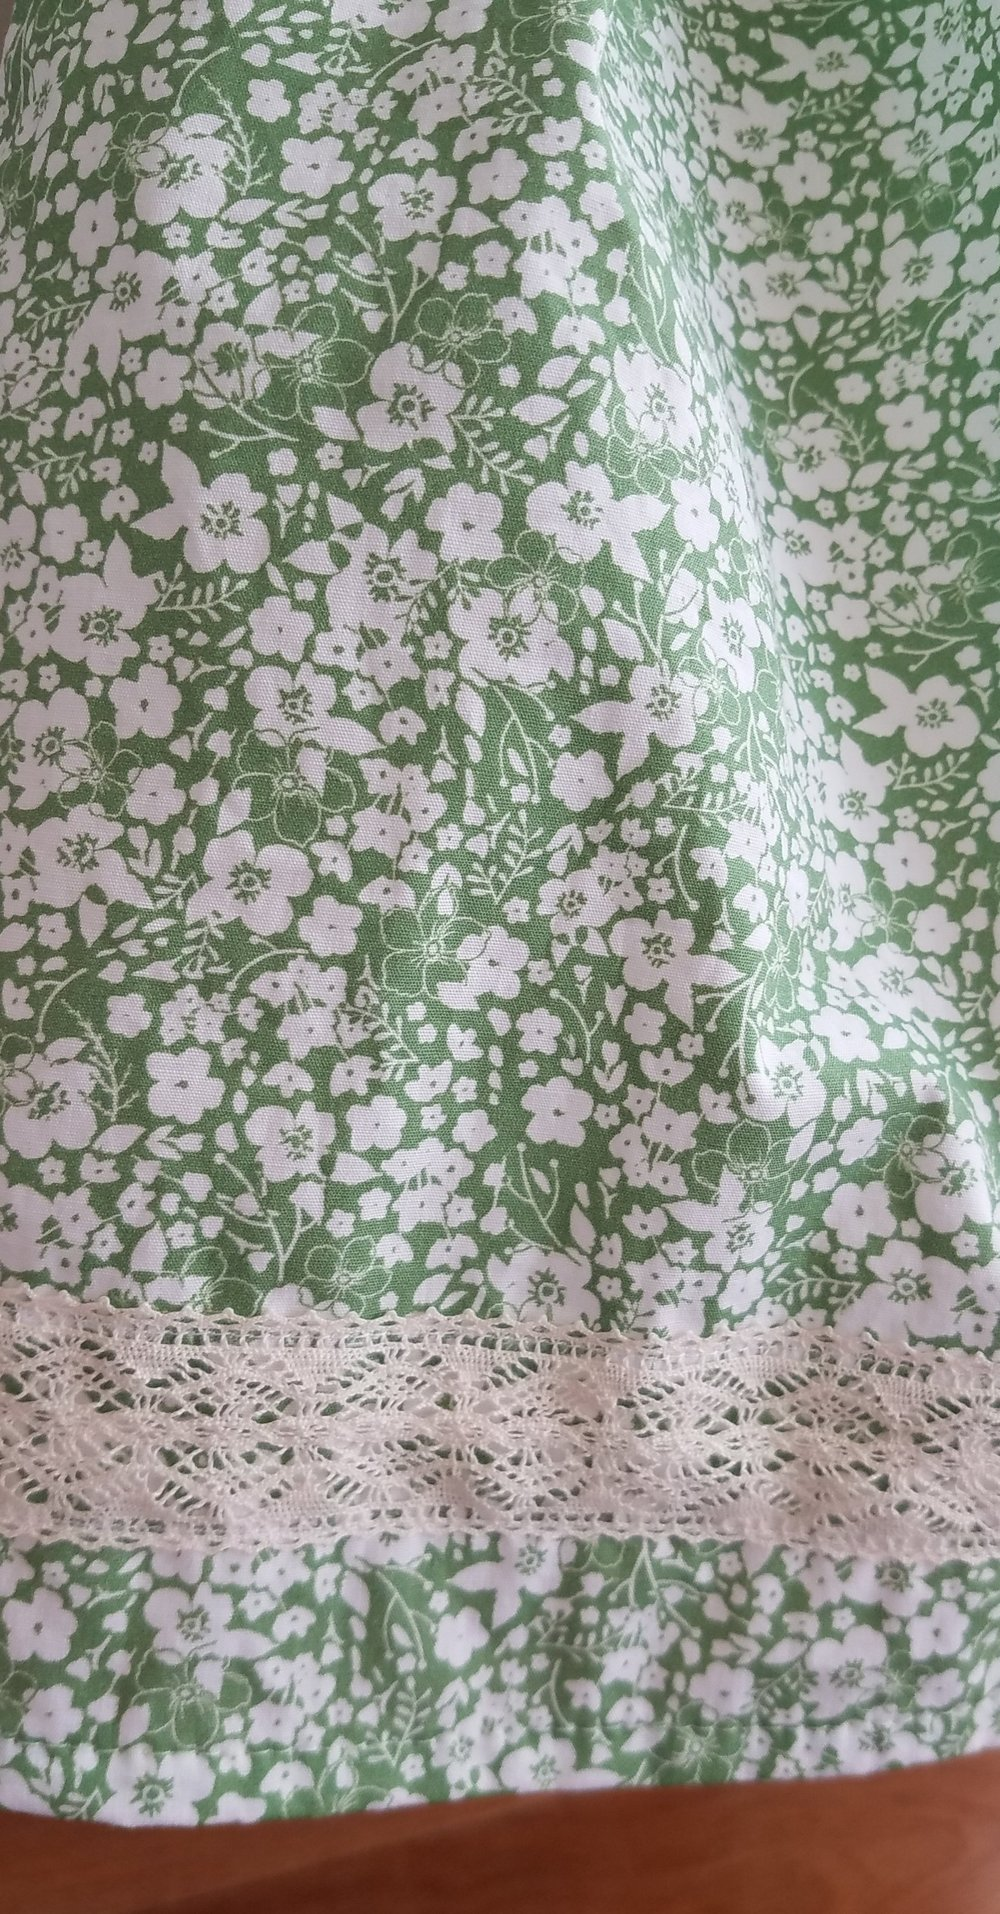 Forget Me Not fabric in Pistachio from Hawthorne Threads